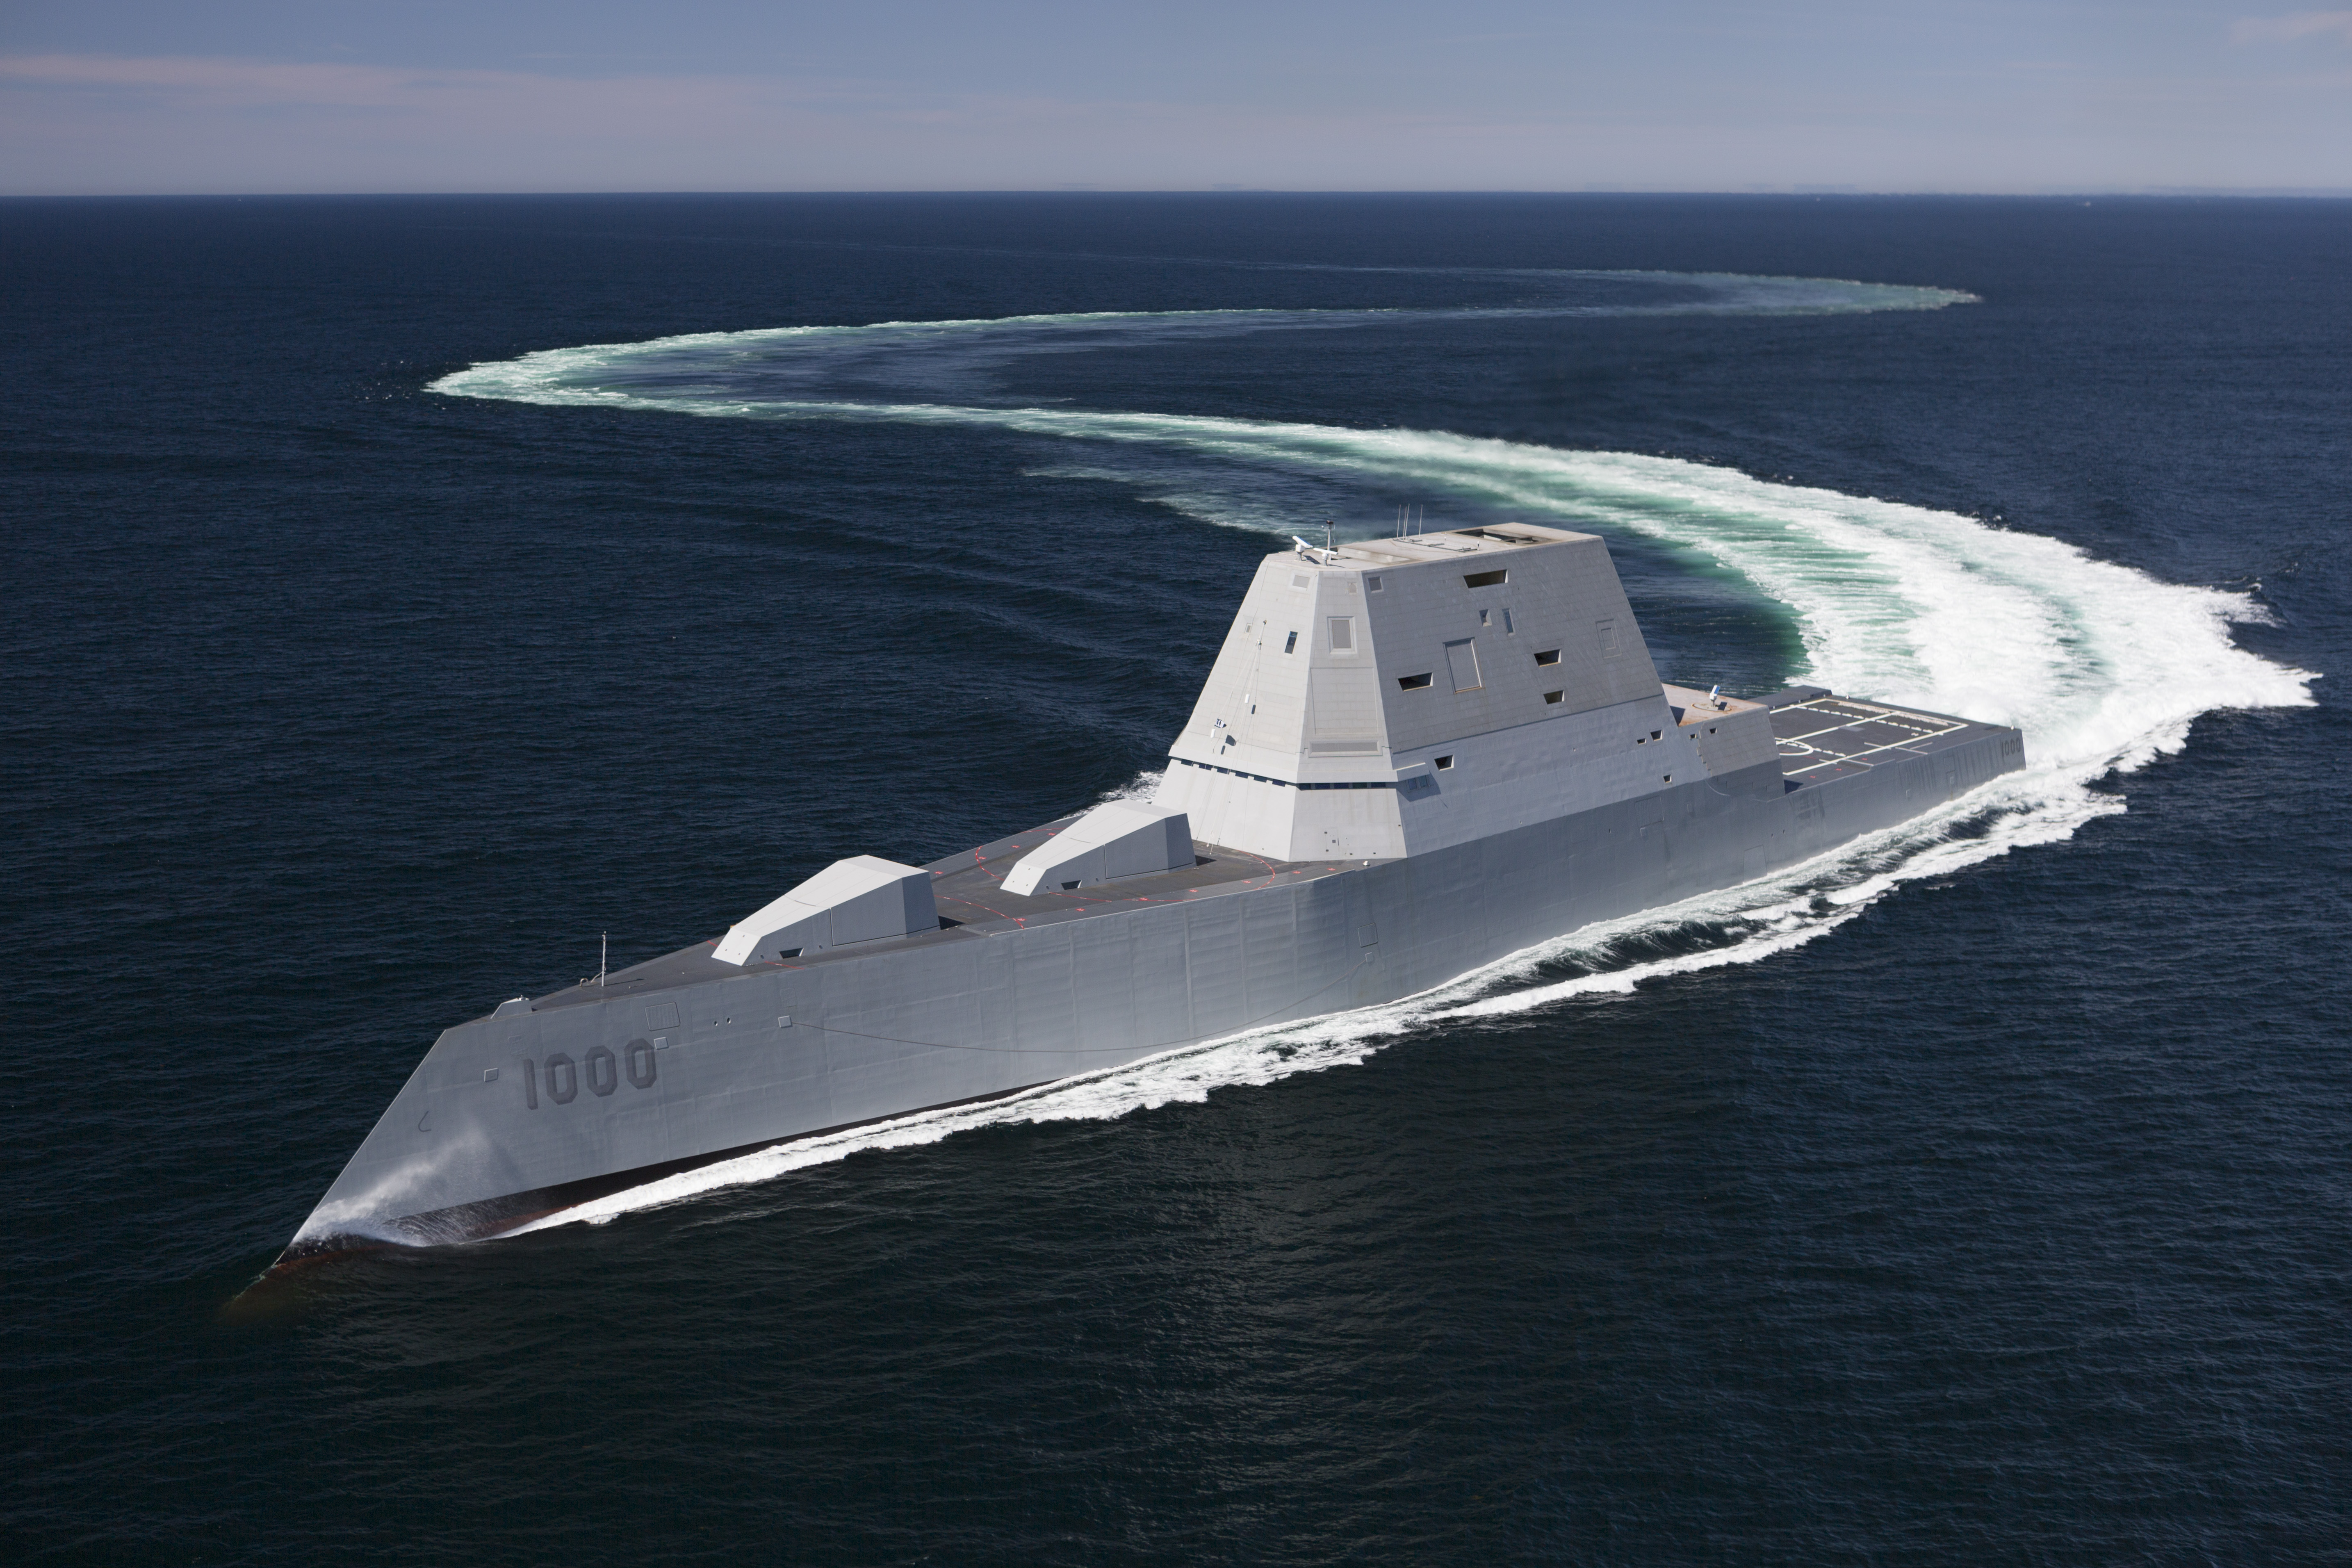 DDG-1000, pictured during acceptance trials in April, is the lead ship of the Zumwalt-class destroyers; next-generation multi-mission surface combatants tailored for land attack and littoral dominance. (U.S. Navy photo courtesy of General Dynamics/Released)